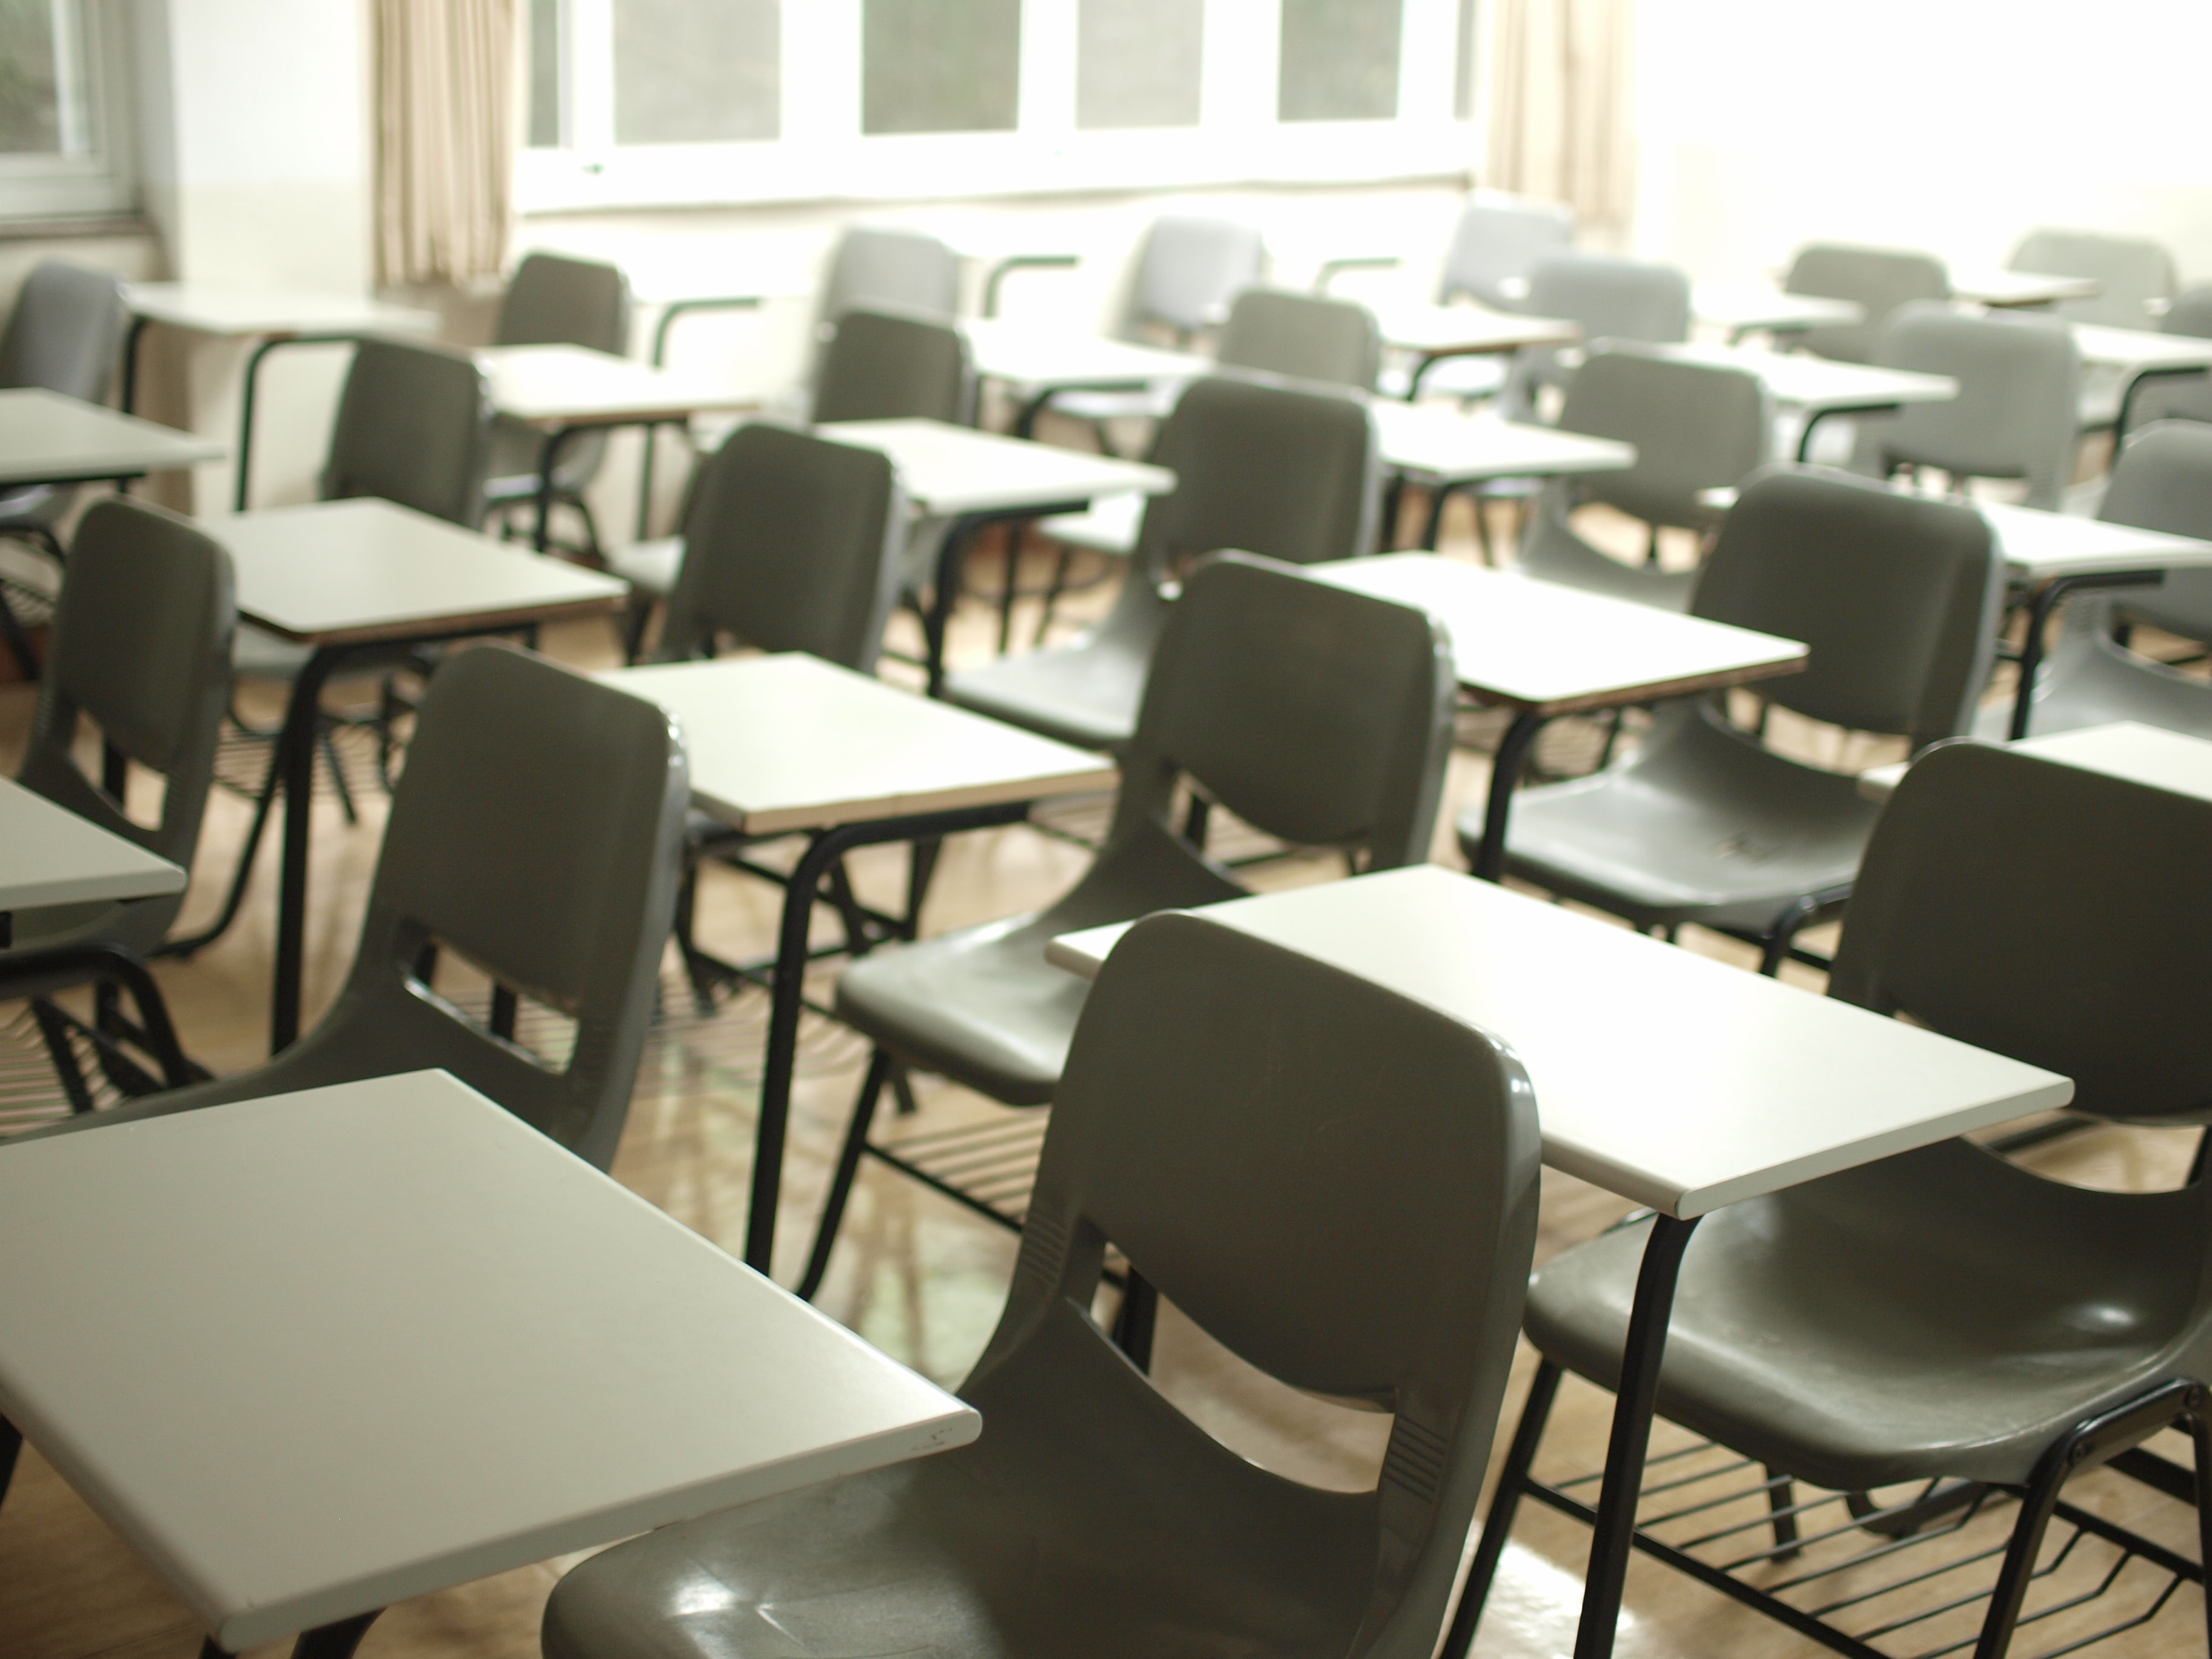 Rows of chairs in an empty classroom. Photo courtesy of MChe Lee via Unsplash.